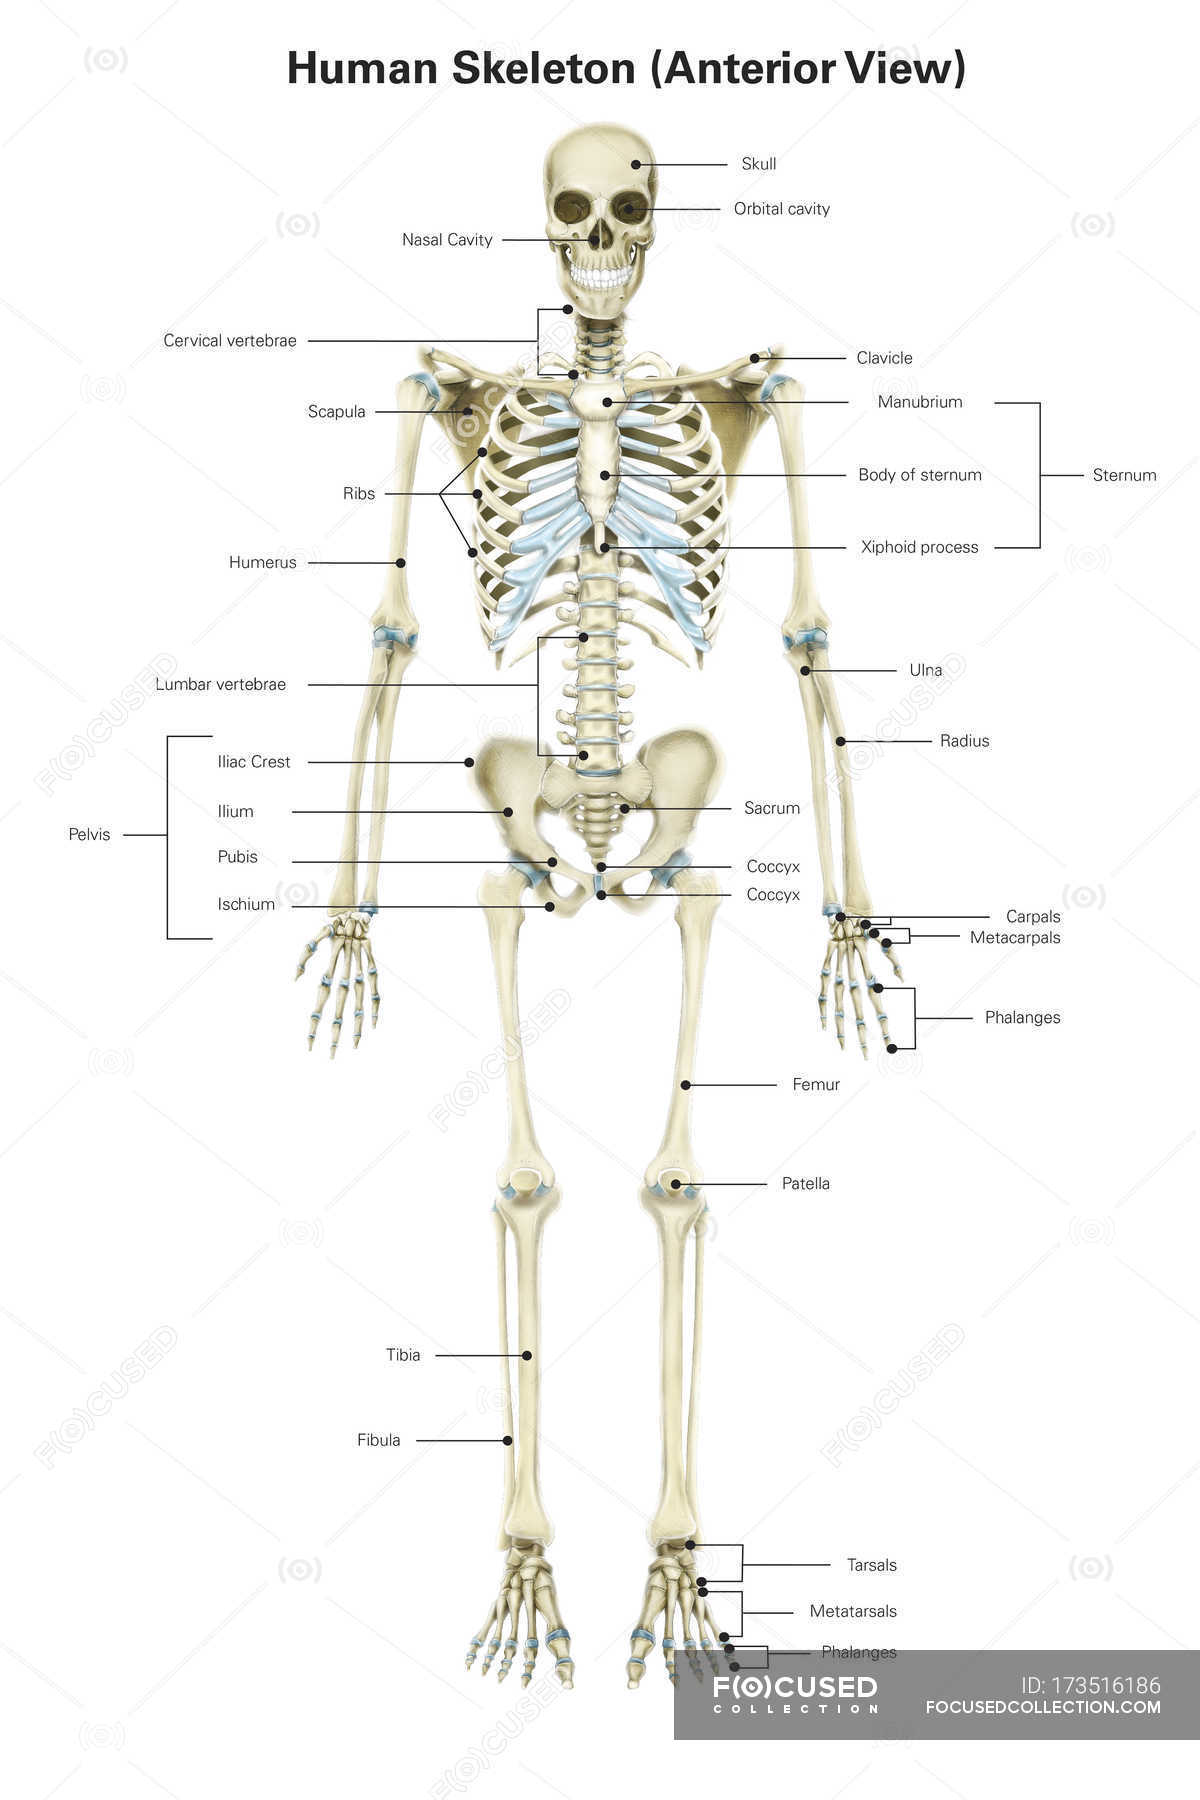 Human Skeletal System With Labels  U2014 Vertical  View